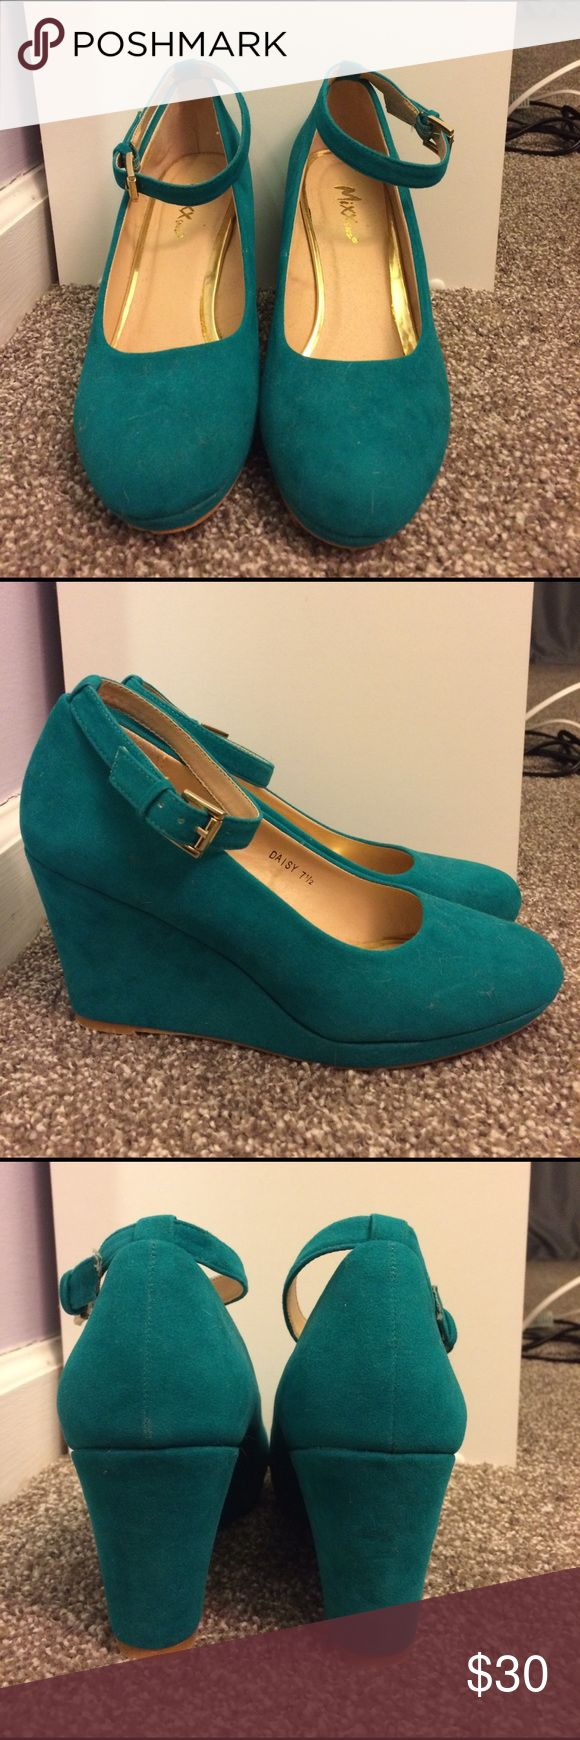 "Mixx Shuz teal wedge Mixx Shuz teal wedges with ankle strap. Super cute ; Perfect with white jeans! Size 7.5. 3.5"" heel. Mixx Shuz Shoes Wedges"